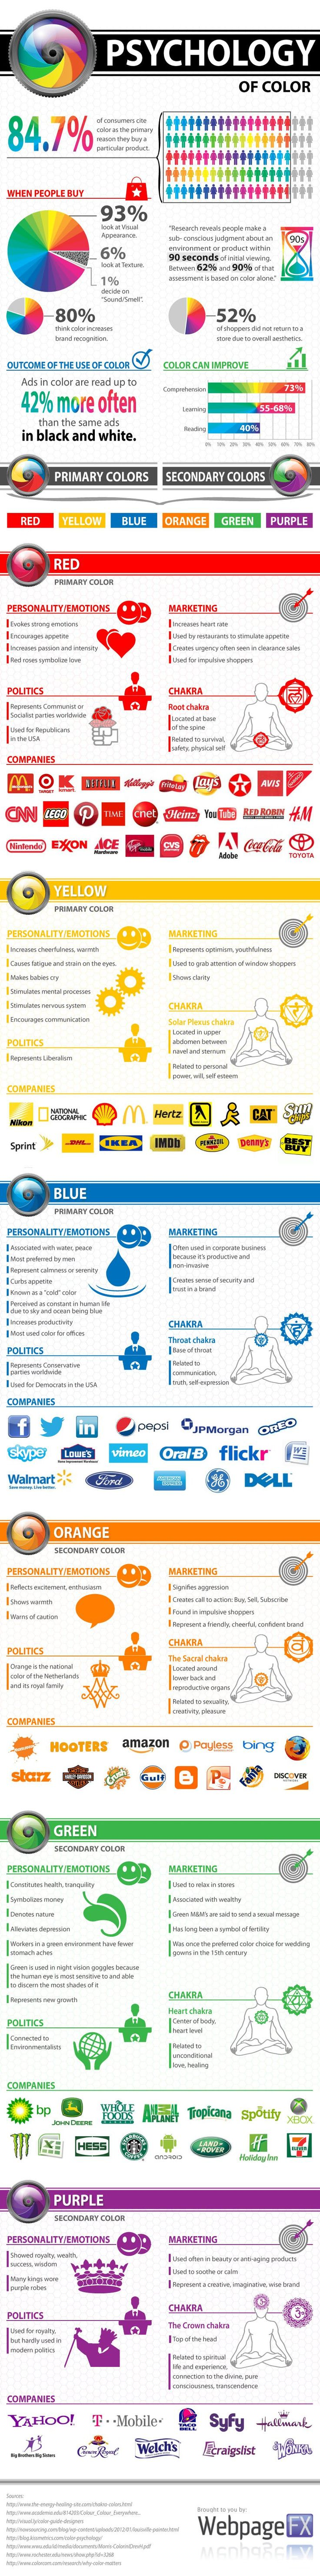 Psychology of Color - #Infographic